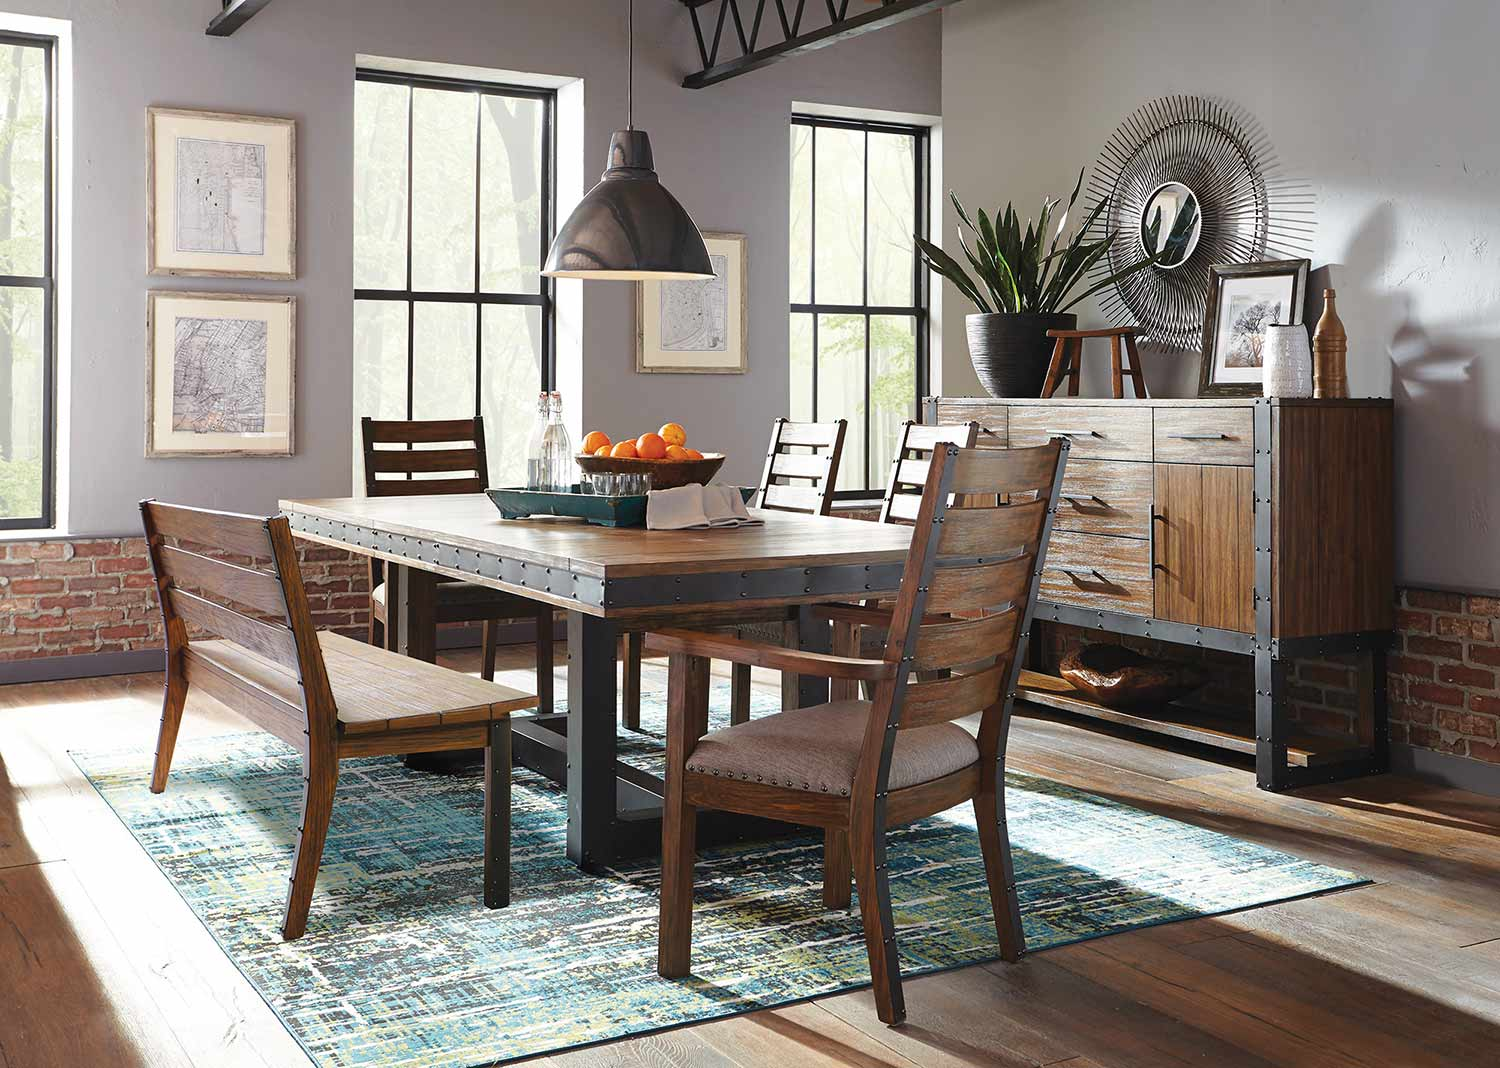 Coaster Atwater Dining Set with Bench - Vintage Bourbon